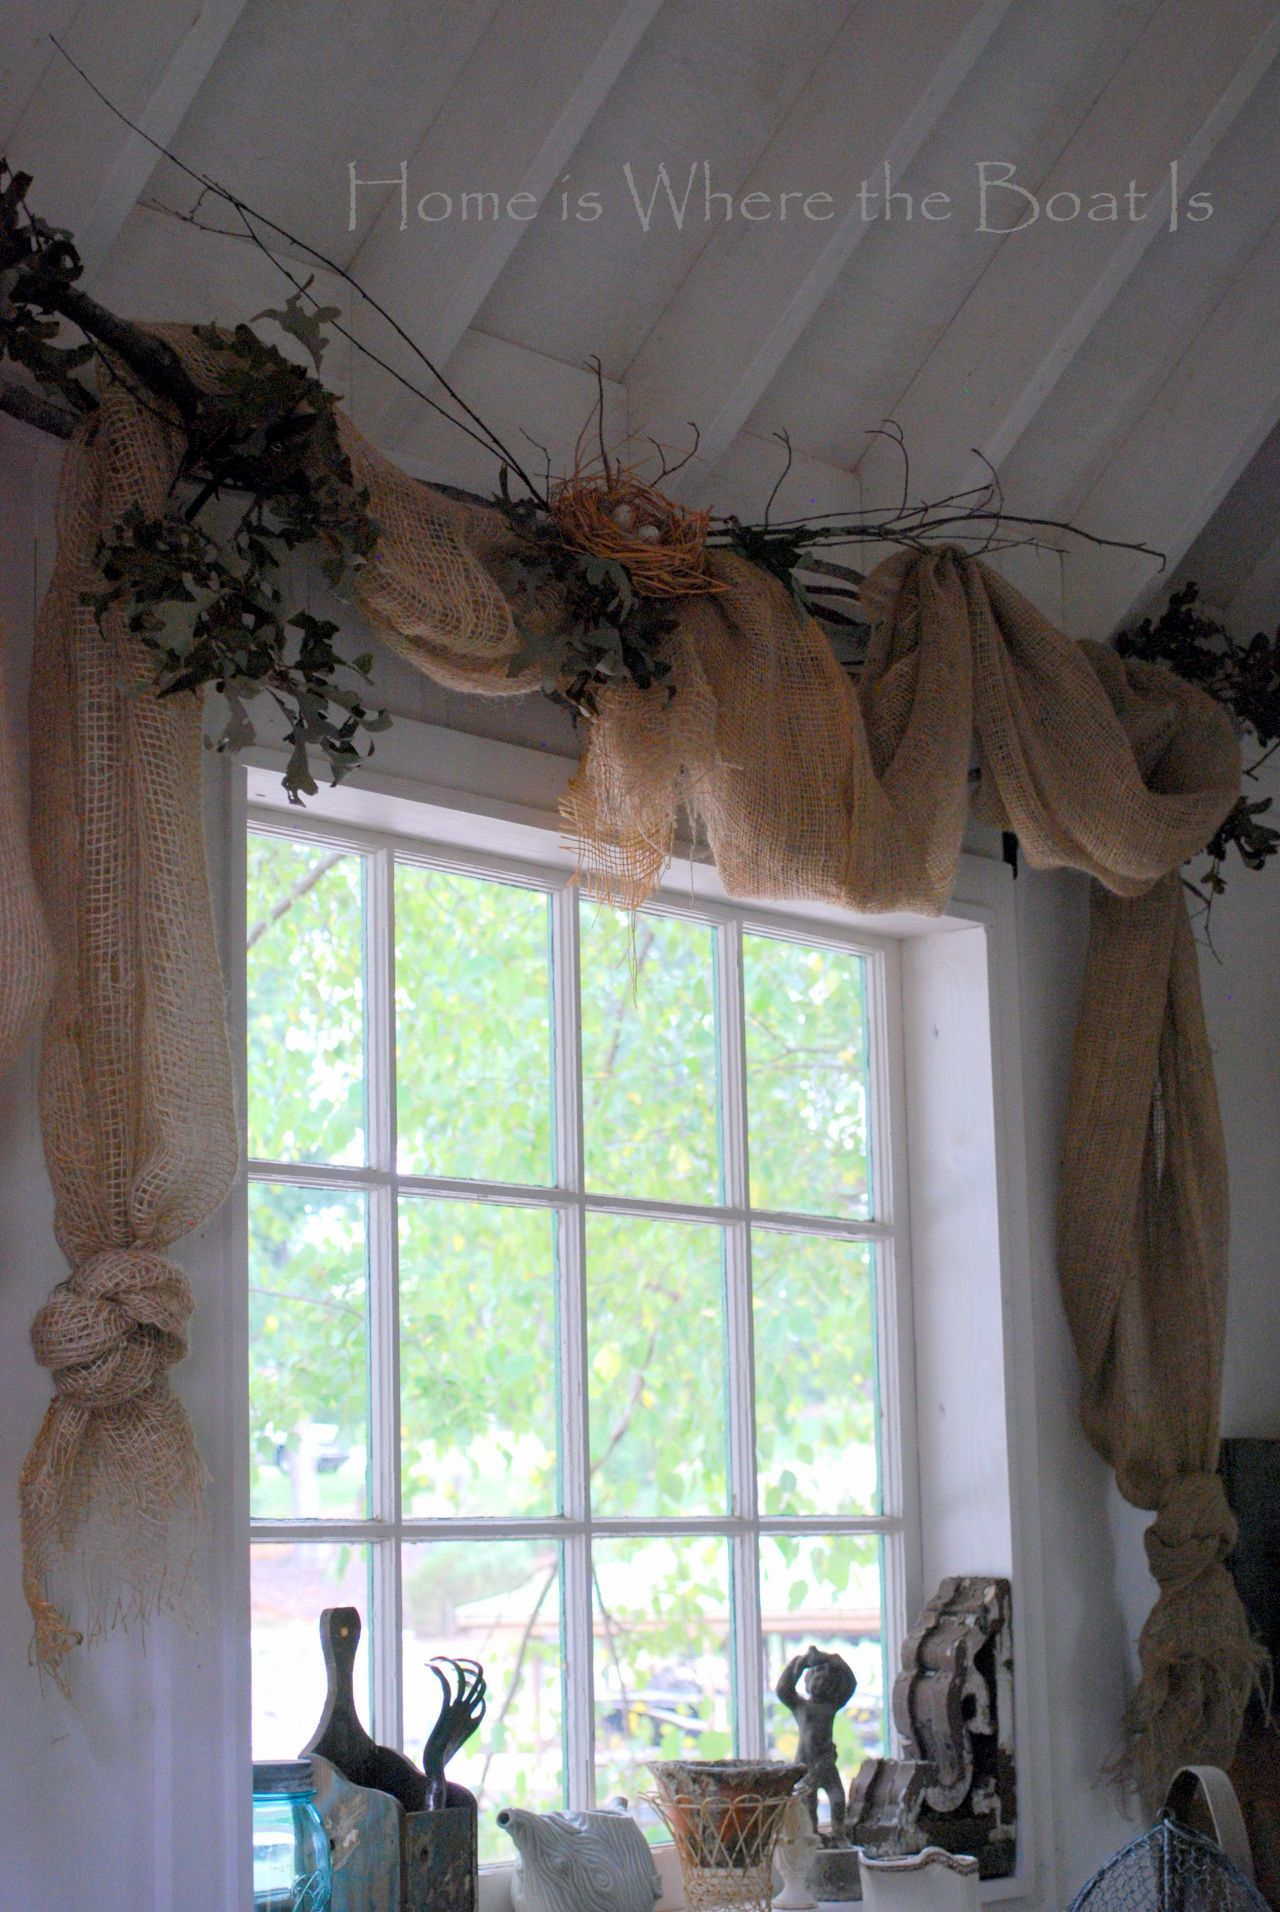 Home decor window  dsc  holiday crafts and food  pinterest  window